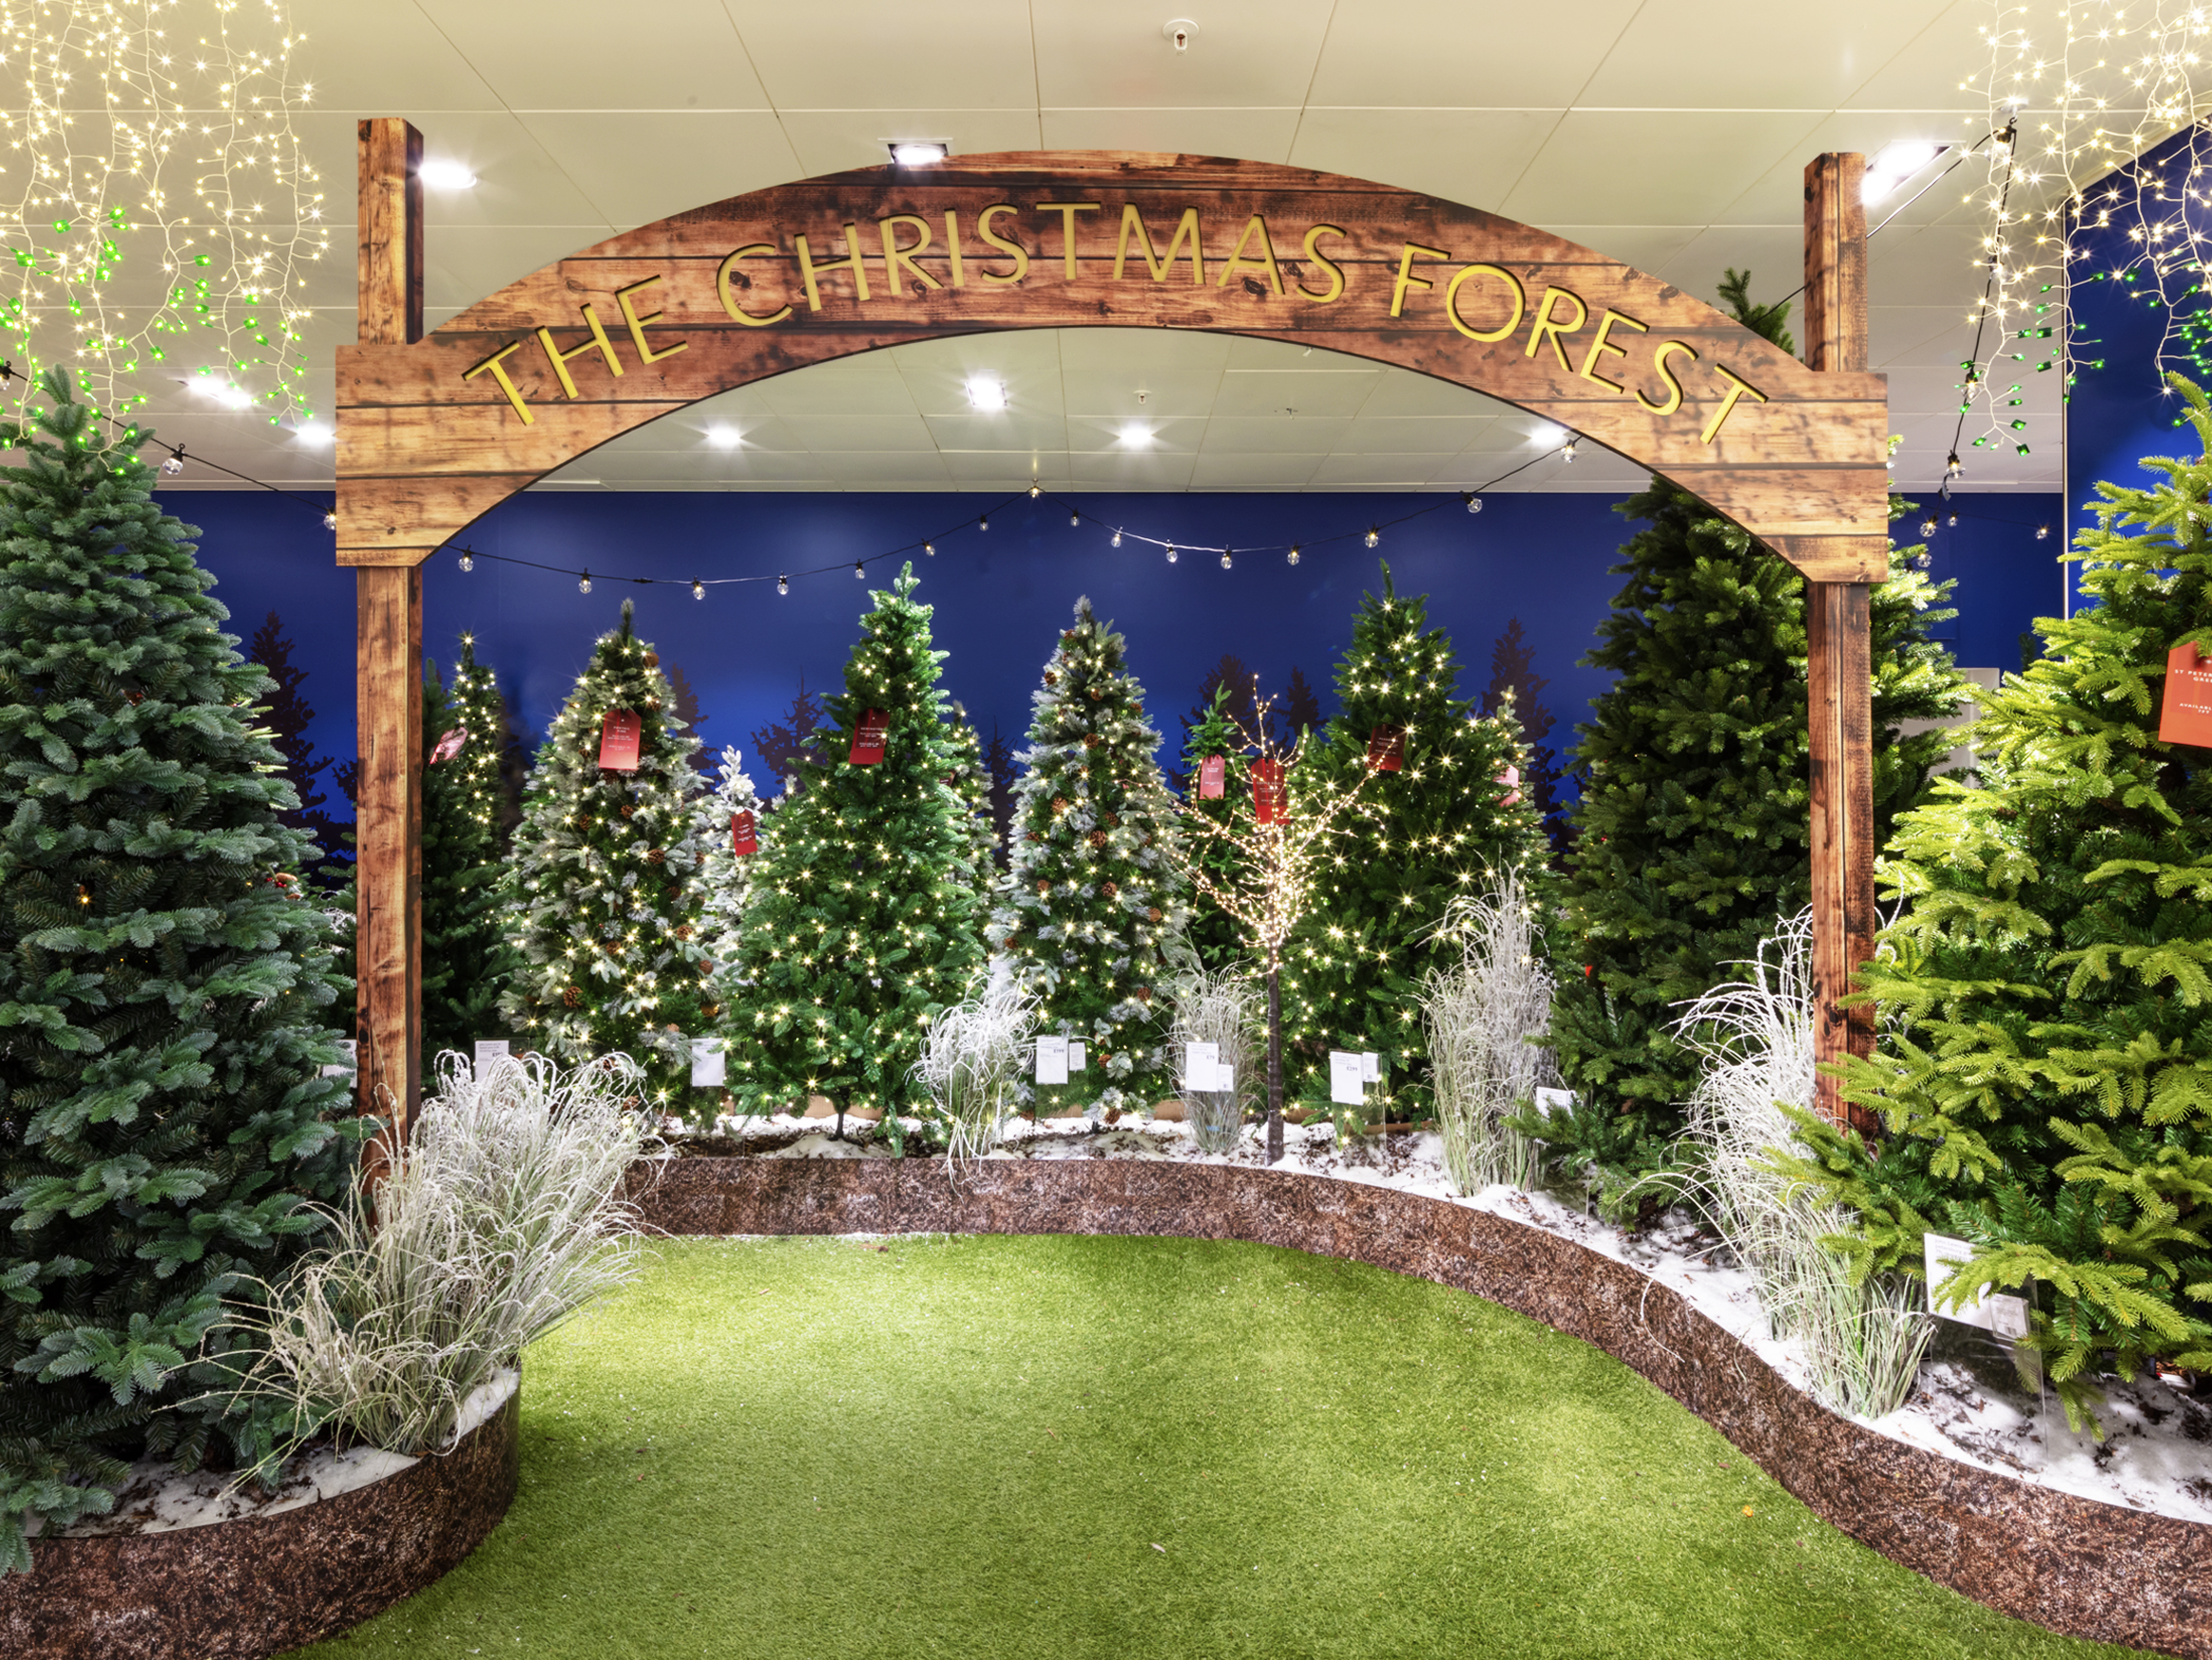 In-Store Christmas Display 10 | Prop Studios | Formroom | John Lewis Christmas